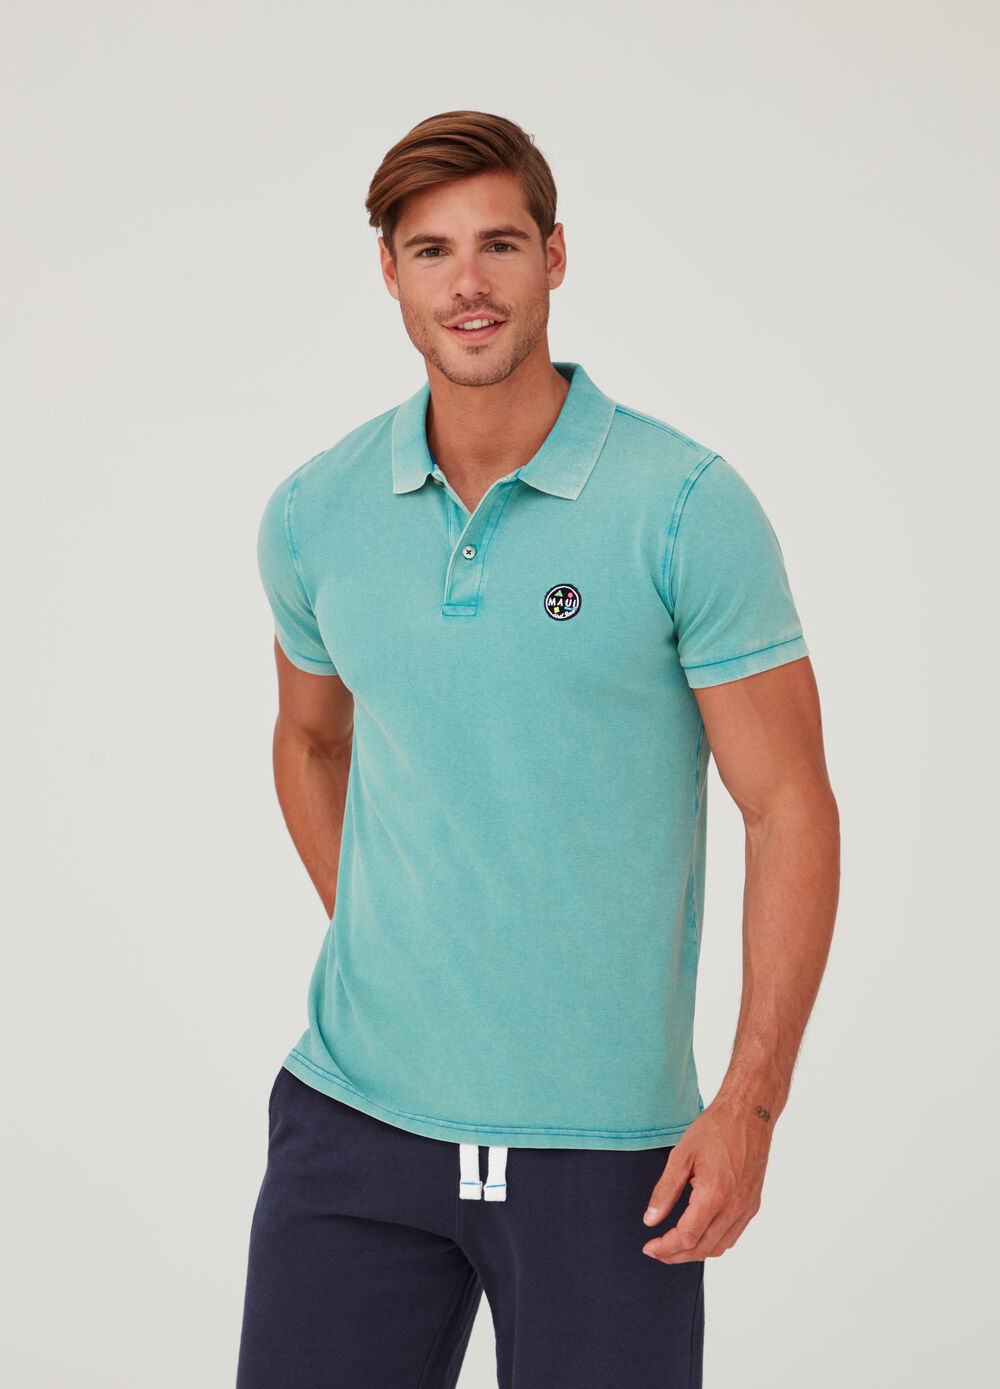 100% cotton polo shirt by Maui and Sons